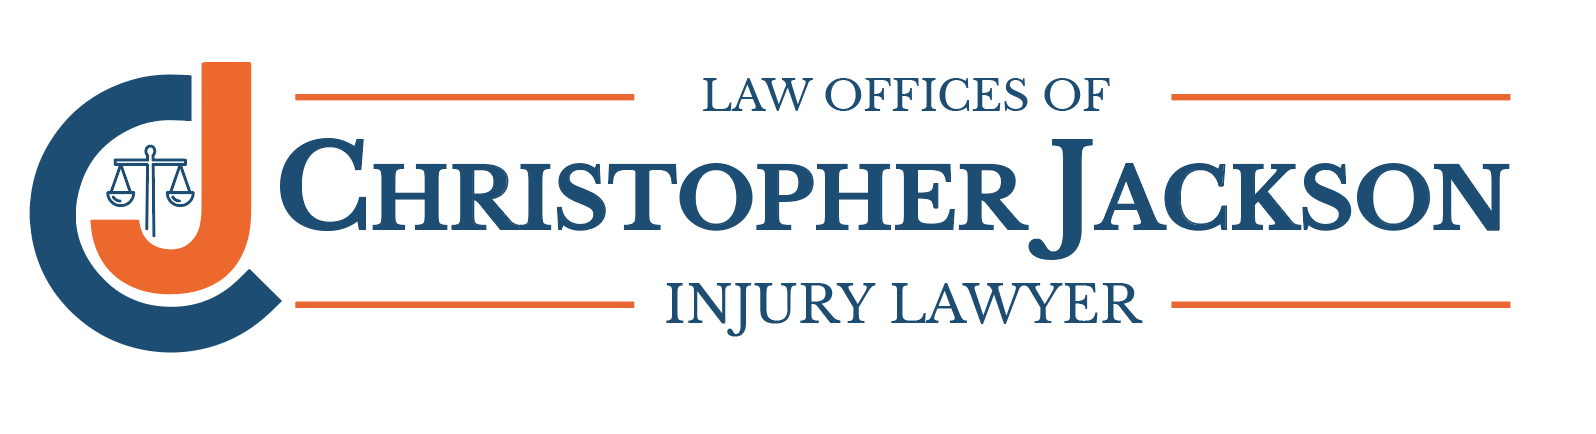 Law Offices of Christopher Jackson